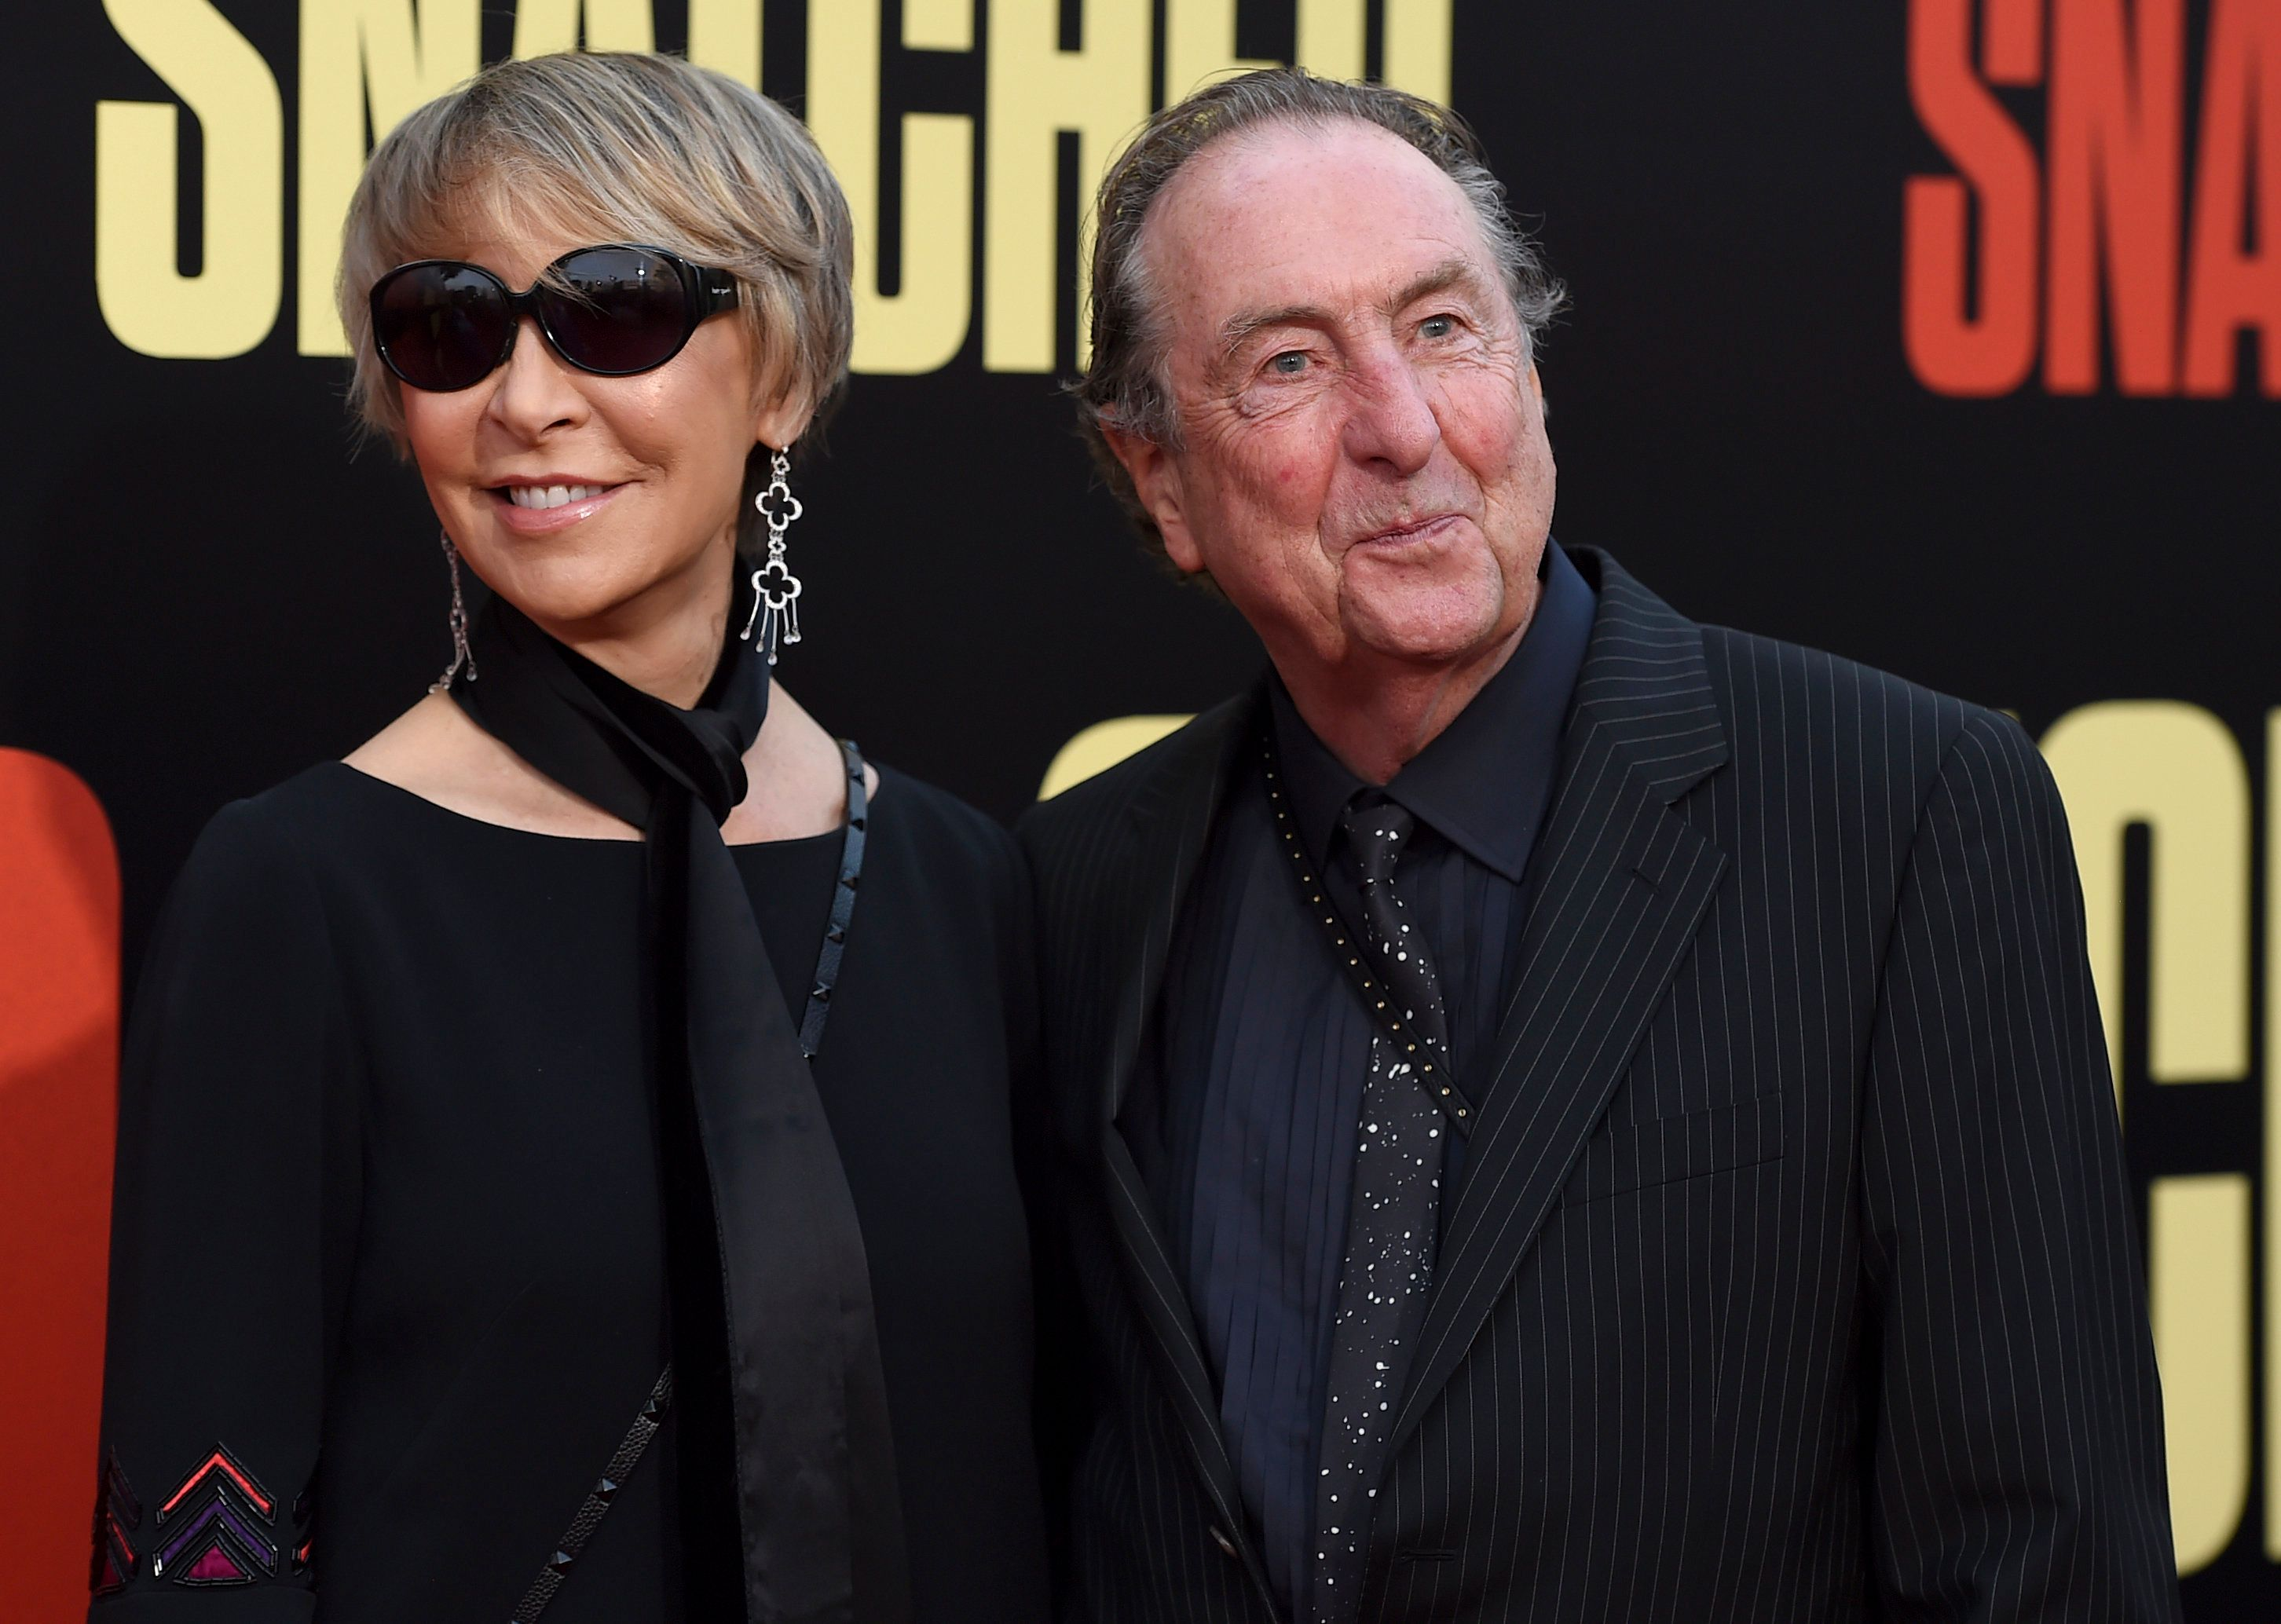 "Tania Kosevich, left, and Eric Idle arrive at the Los Angeles premiere of ""Snatched"" at the Regency Village Theater on Wednesday, May 10, 2017. (Photo by Jordan Strauss/Invision/AP)"